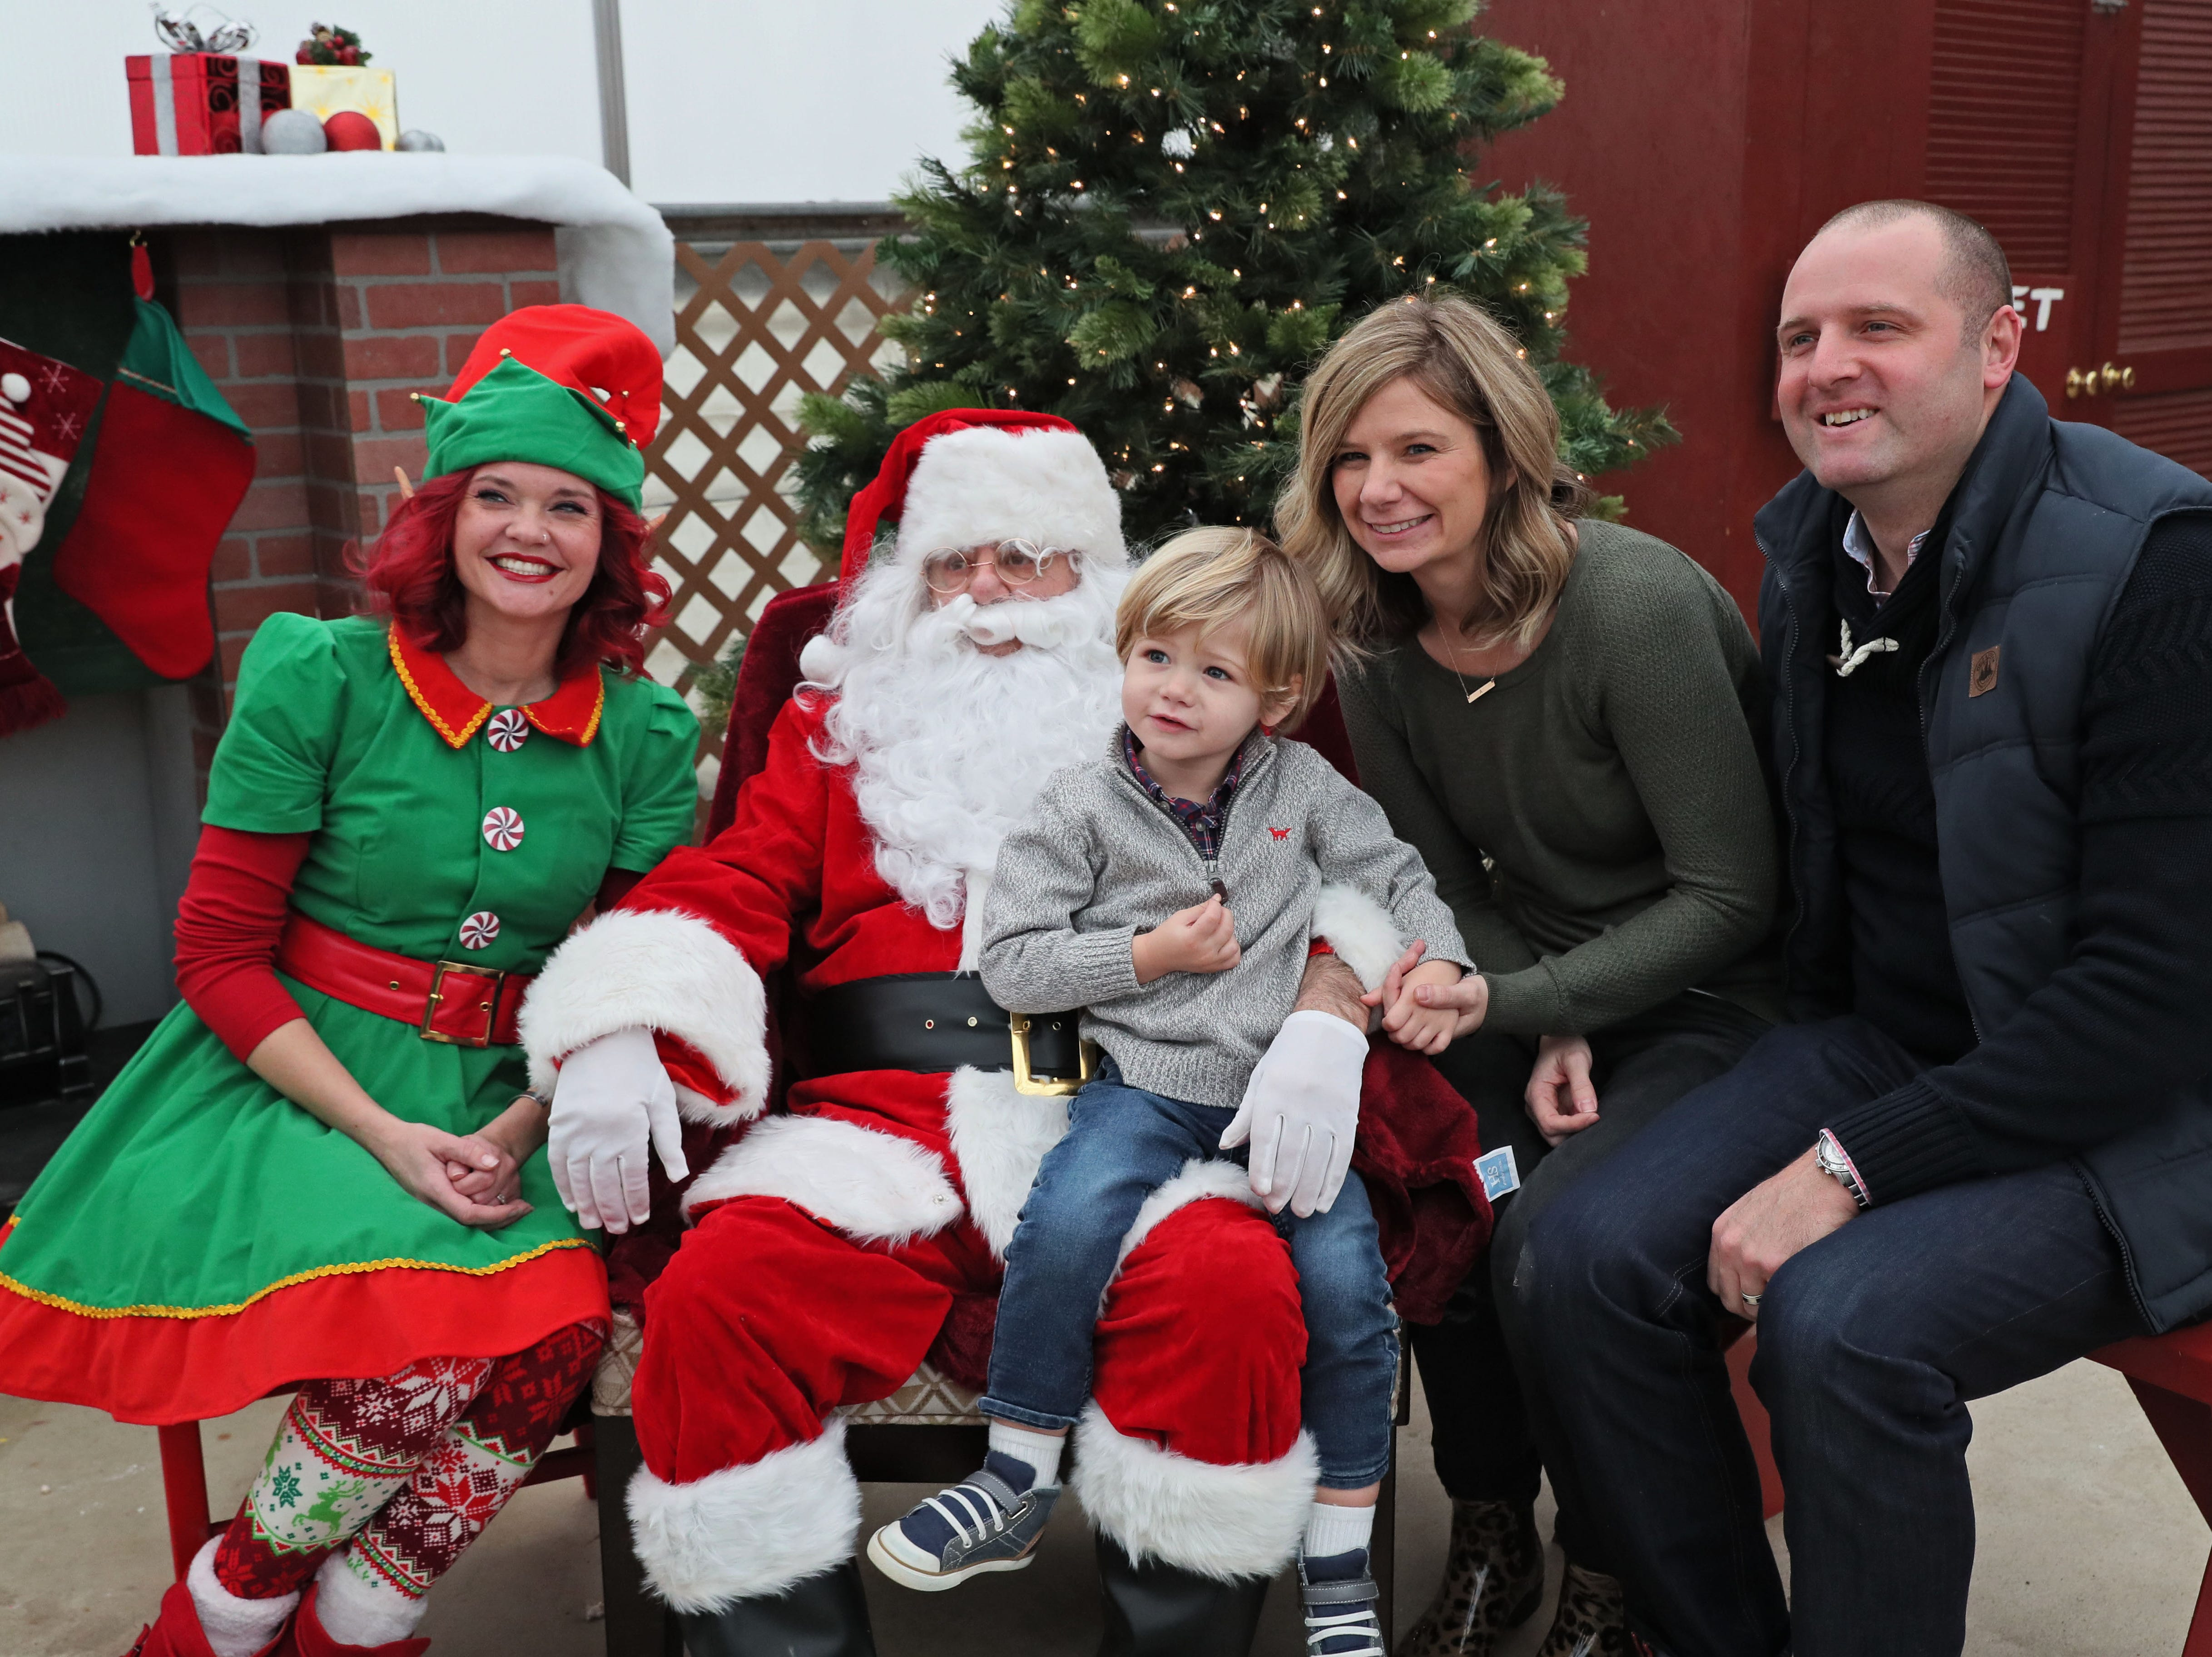 Kaaren Adam, her son Asher, 2, and husband Bill, all of Johnson Creek, pose for a photo with Santa (Blase Catanese) and his elf ( Anna Gleason) at The Elegant Farmer.